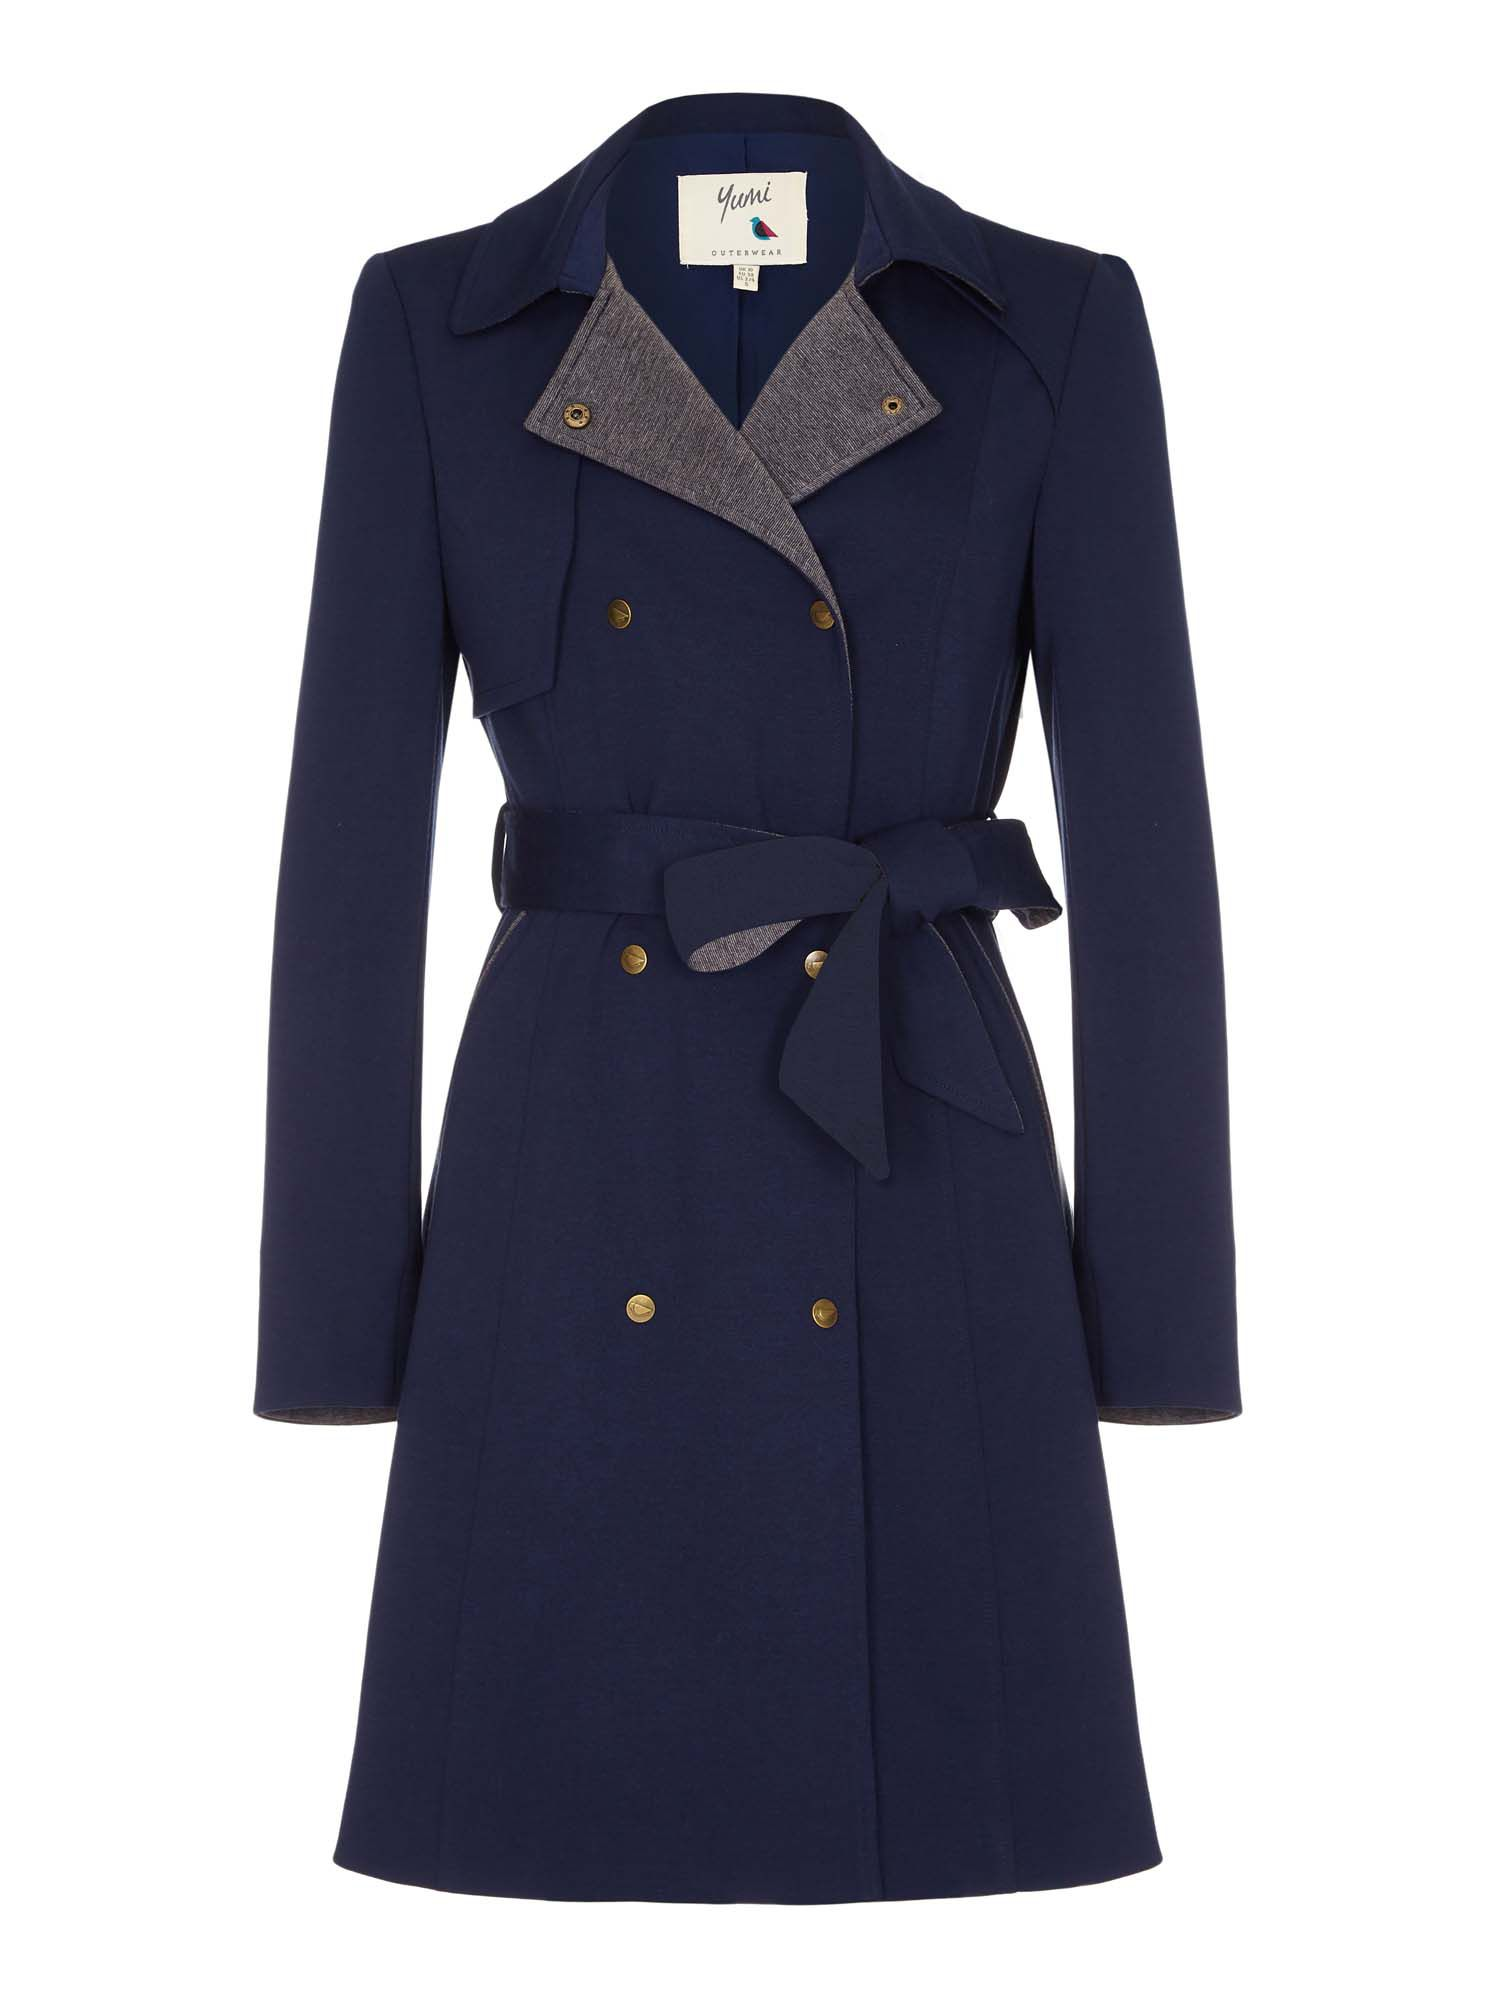 New 1940s Style Coats and Jackets for Sale Yumi Swing Hem Trench Coat Blue £36.00 AT vintagedancer.com